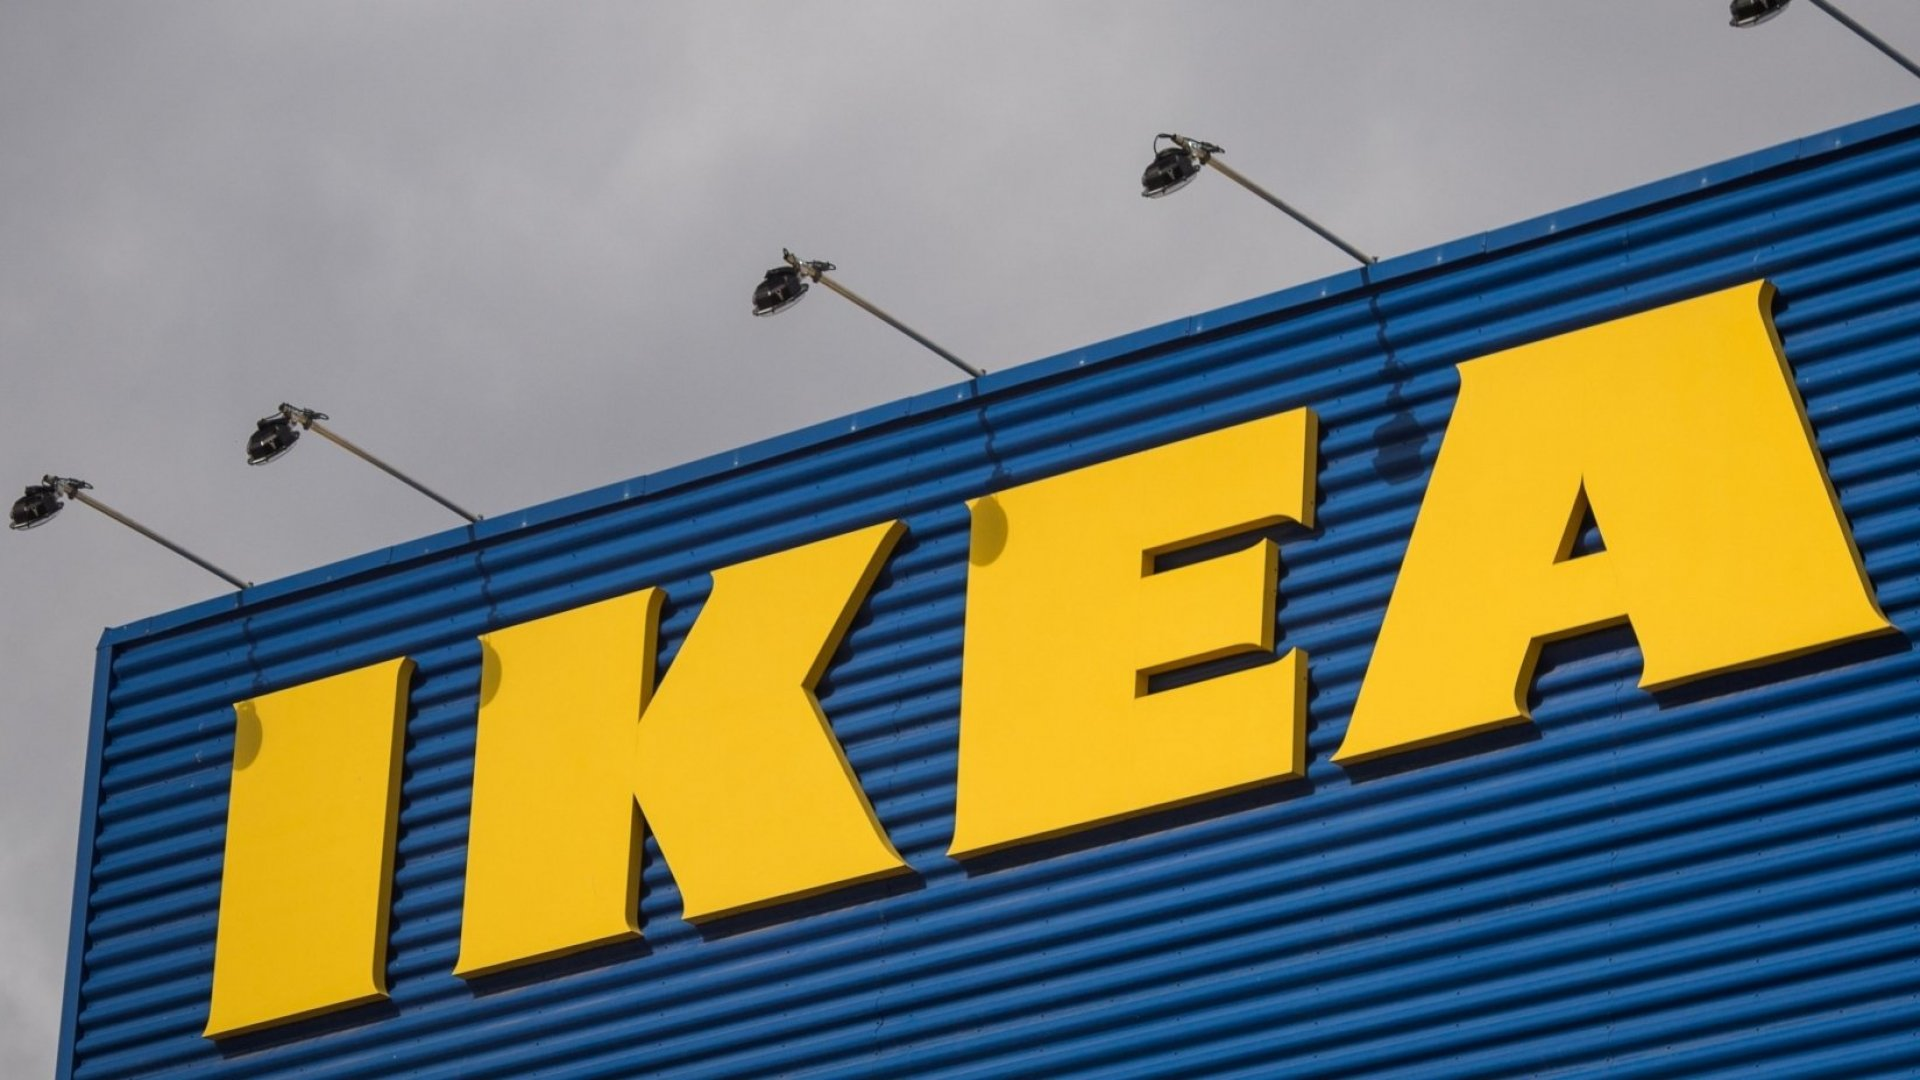 Ikea Is Making Very Big Changes, and Its CEO Just Revealed the Whole Plan on LinkedIn